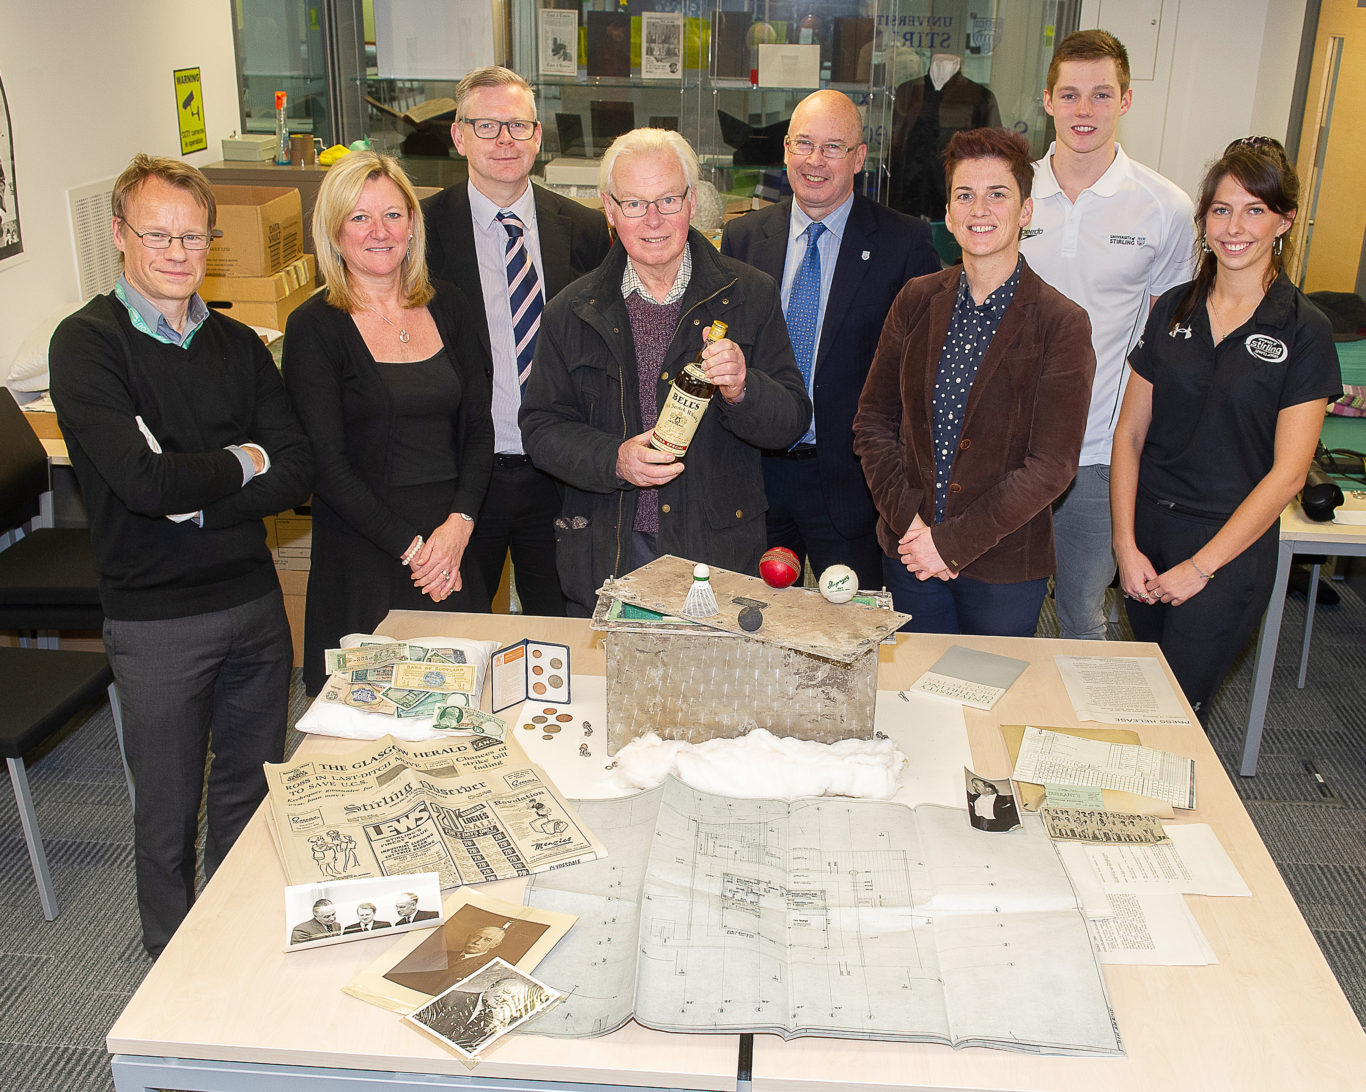 Stirling University time capsule